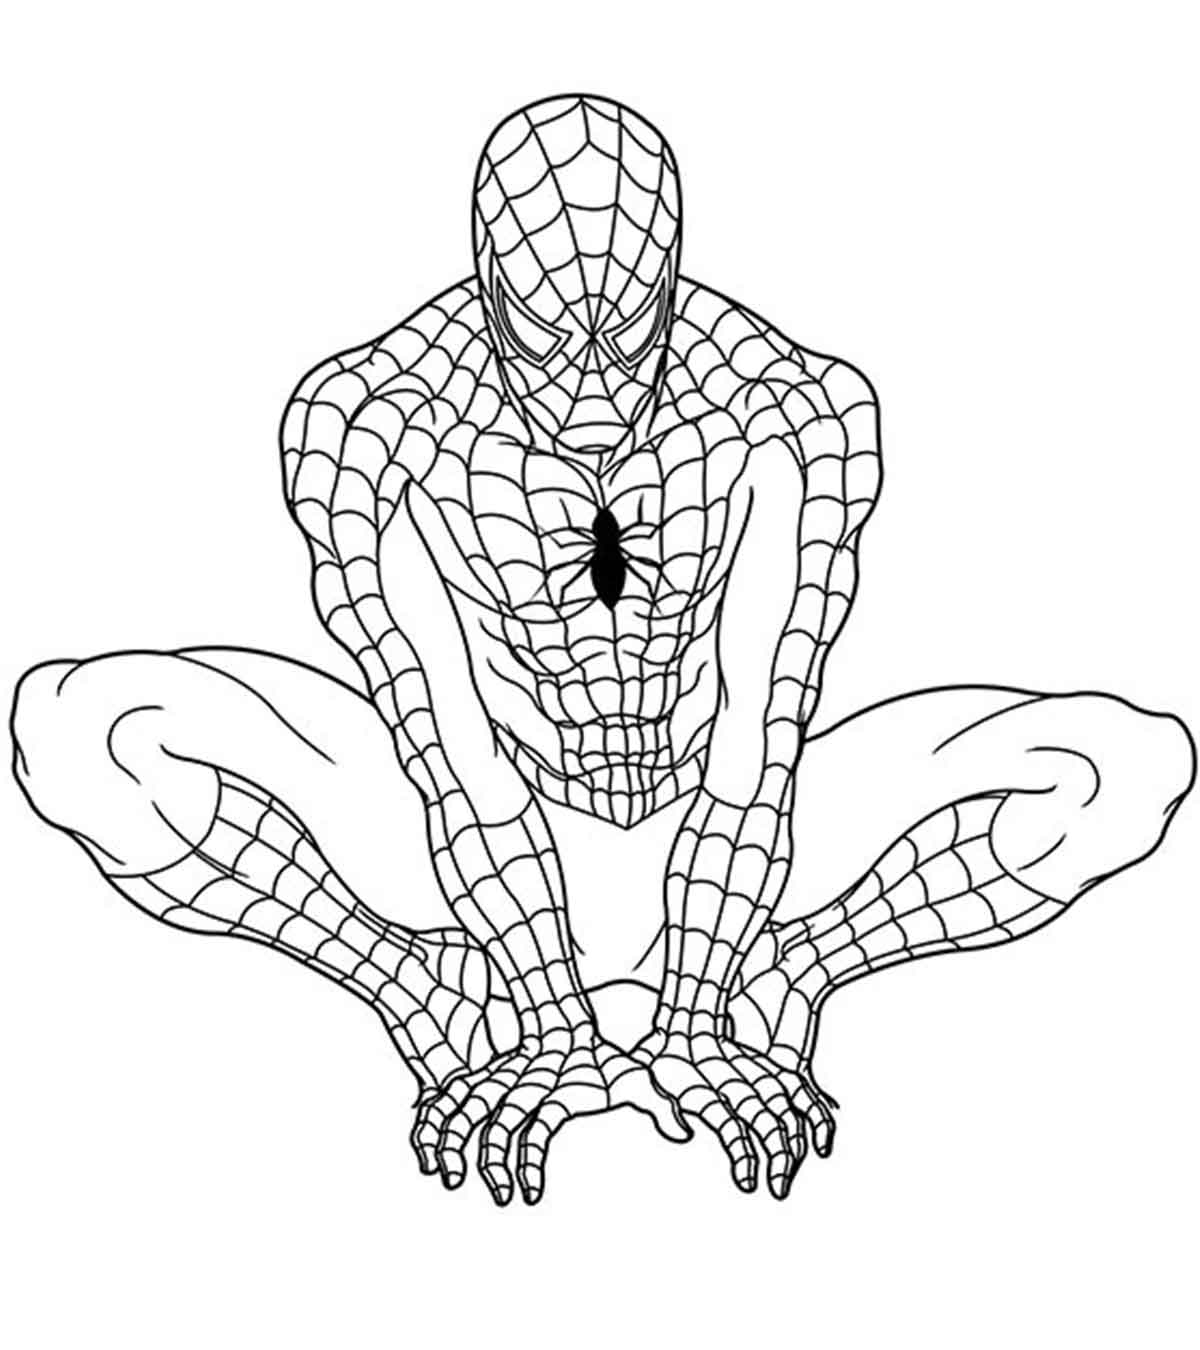 graphic regarding Superhero Coloring Pages Printable known as Ultimate 20 Cost-free Printable Superhero Coloring Internet pages On-line